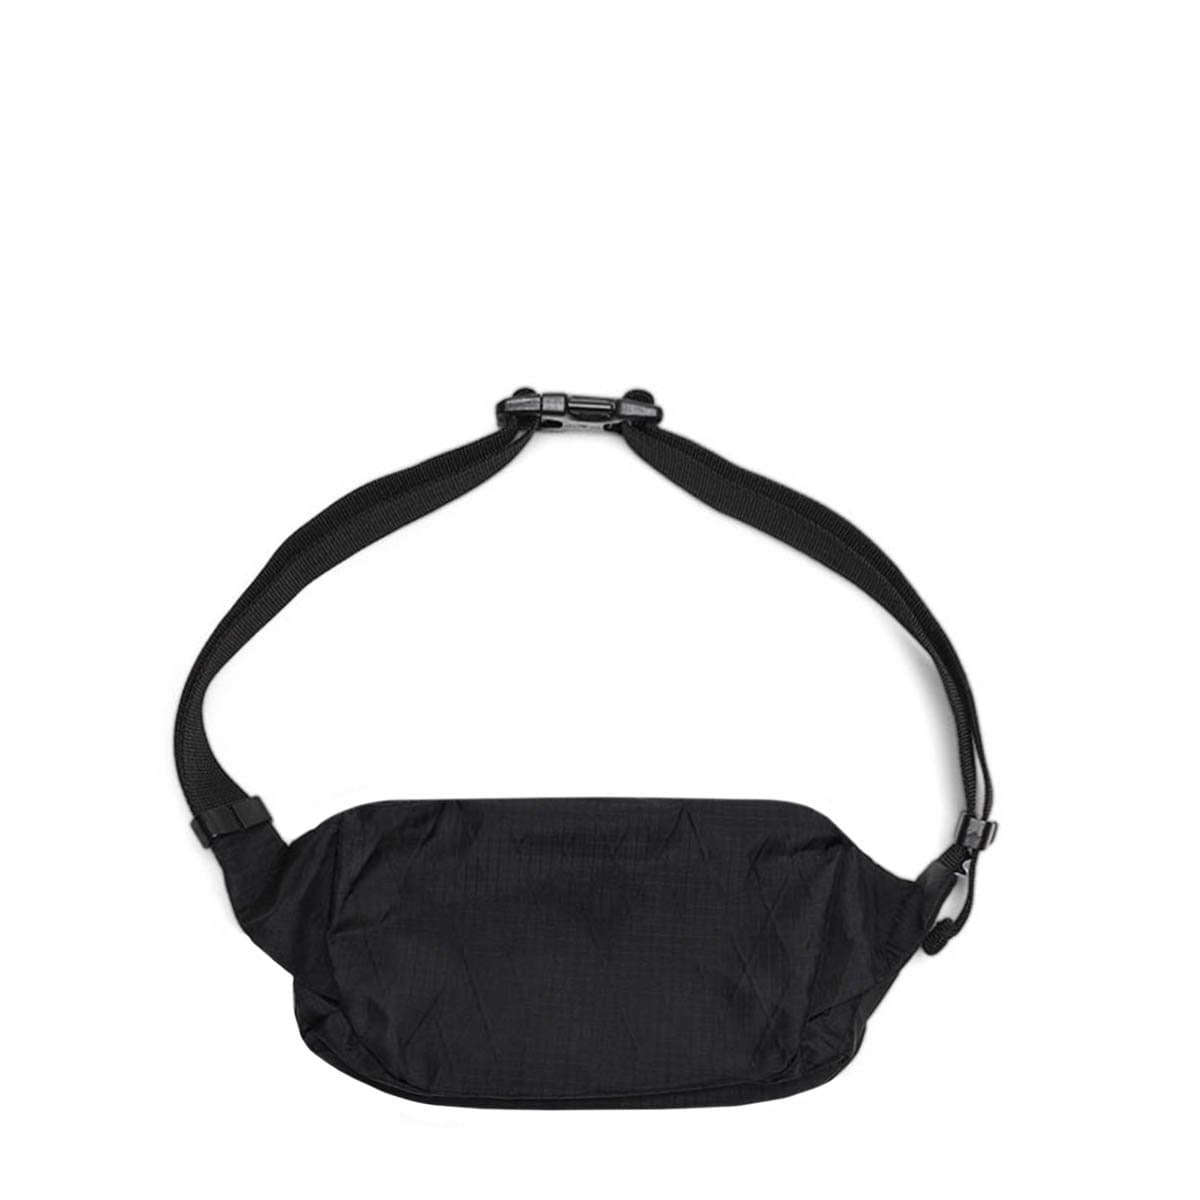 Stüssy Bags & Accessories BLACK / O/S WAIST PACK